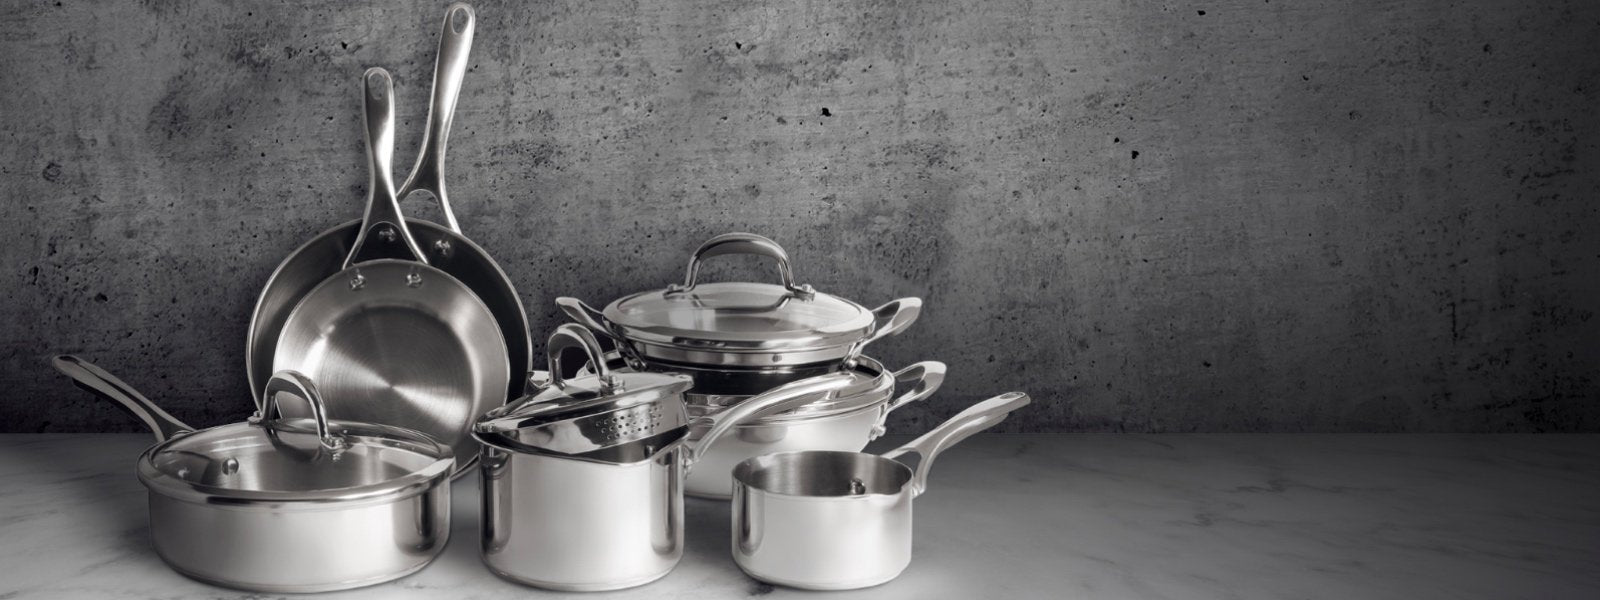 Independence from Dependence on your old cookware!